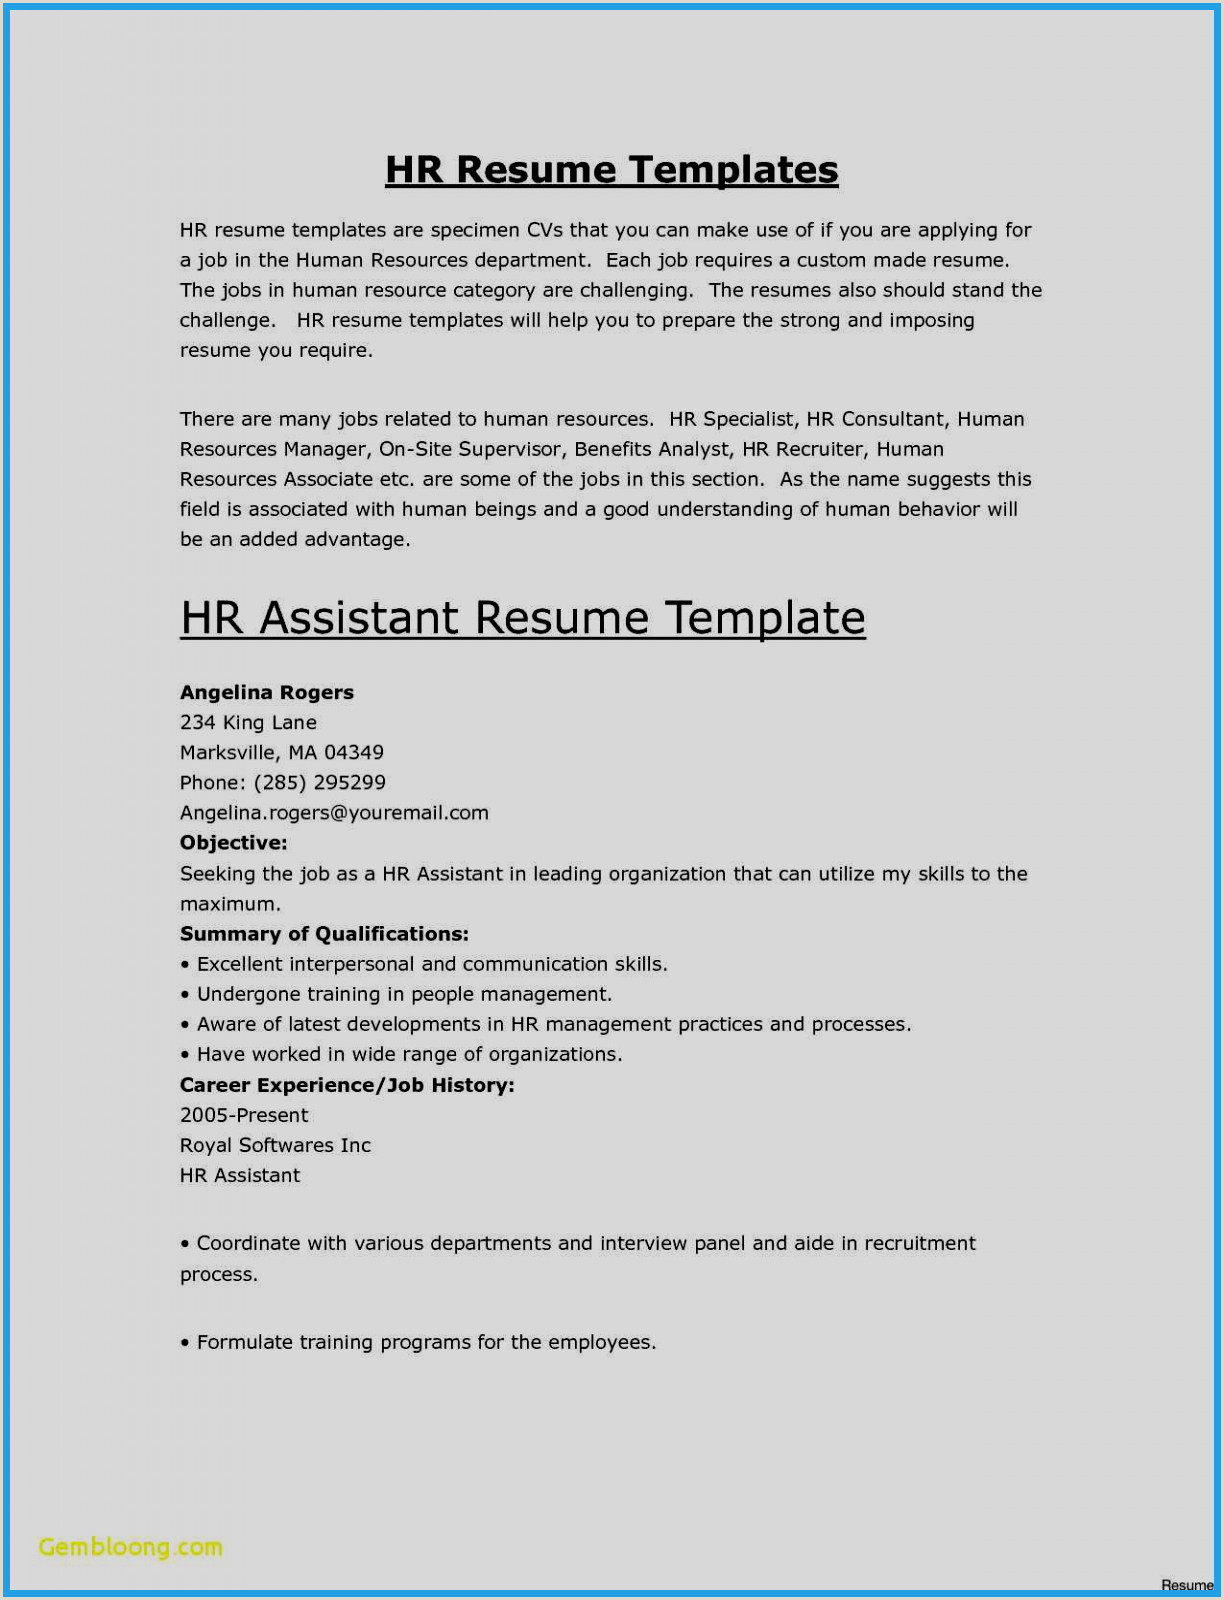 Professional Cv format Images Professional Cv Template Doc Elegant Free Creative Resume